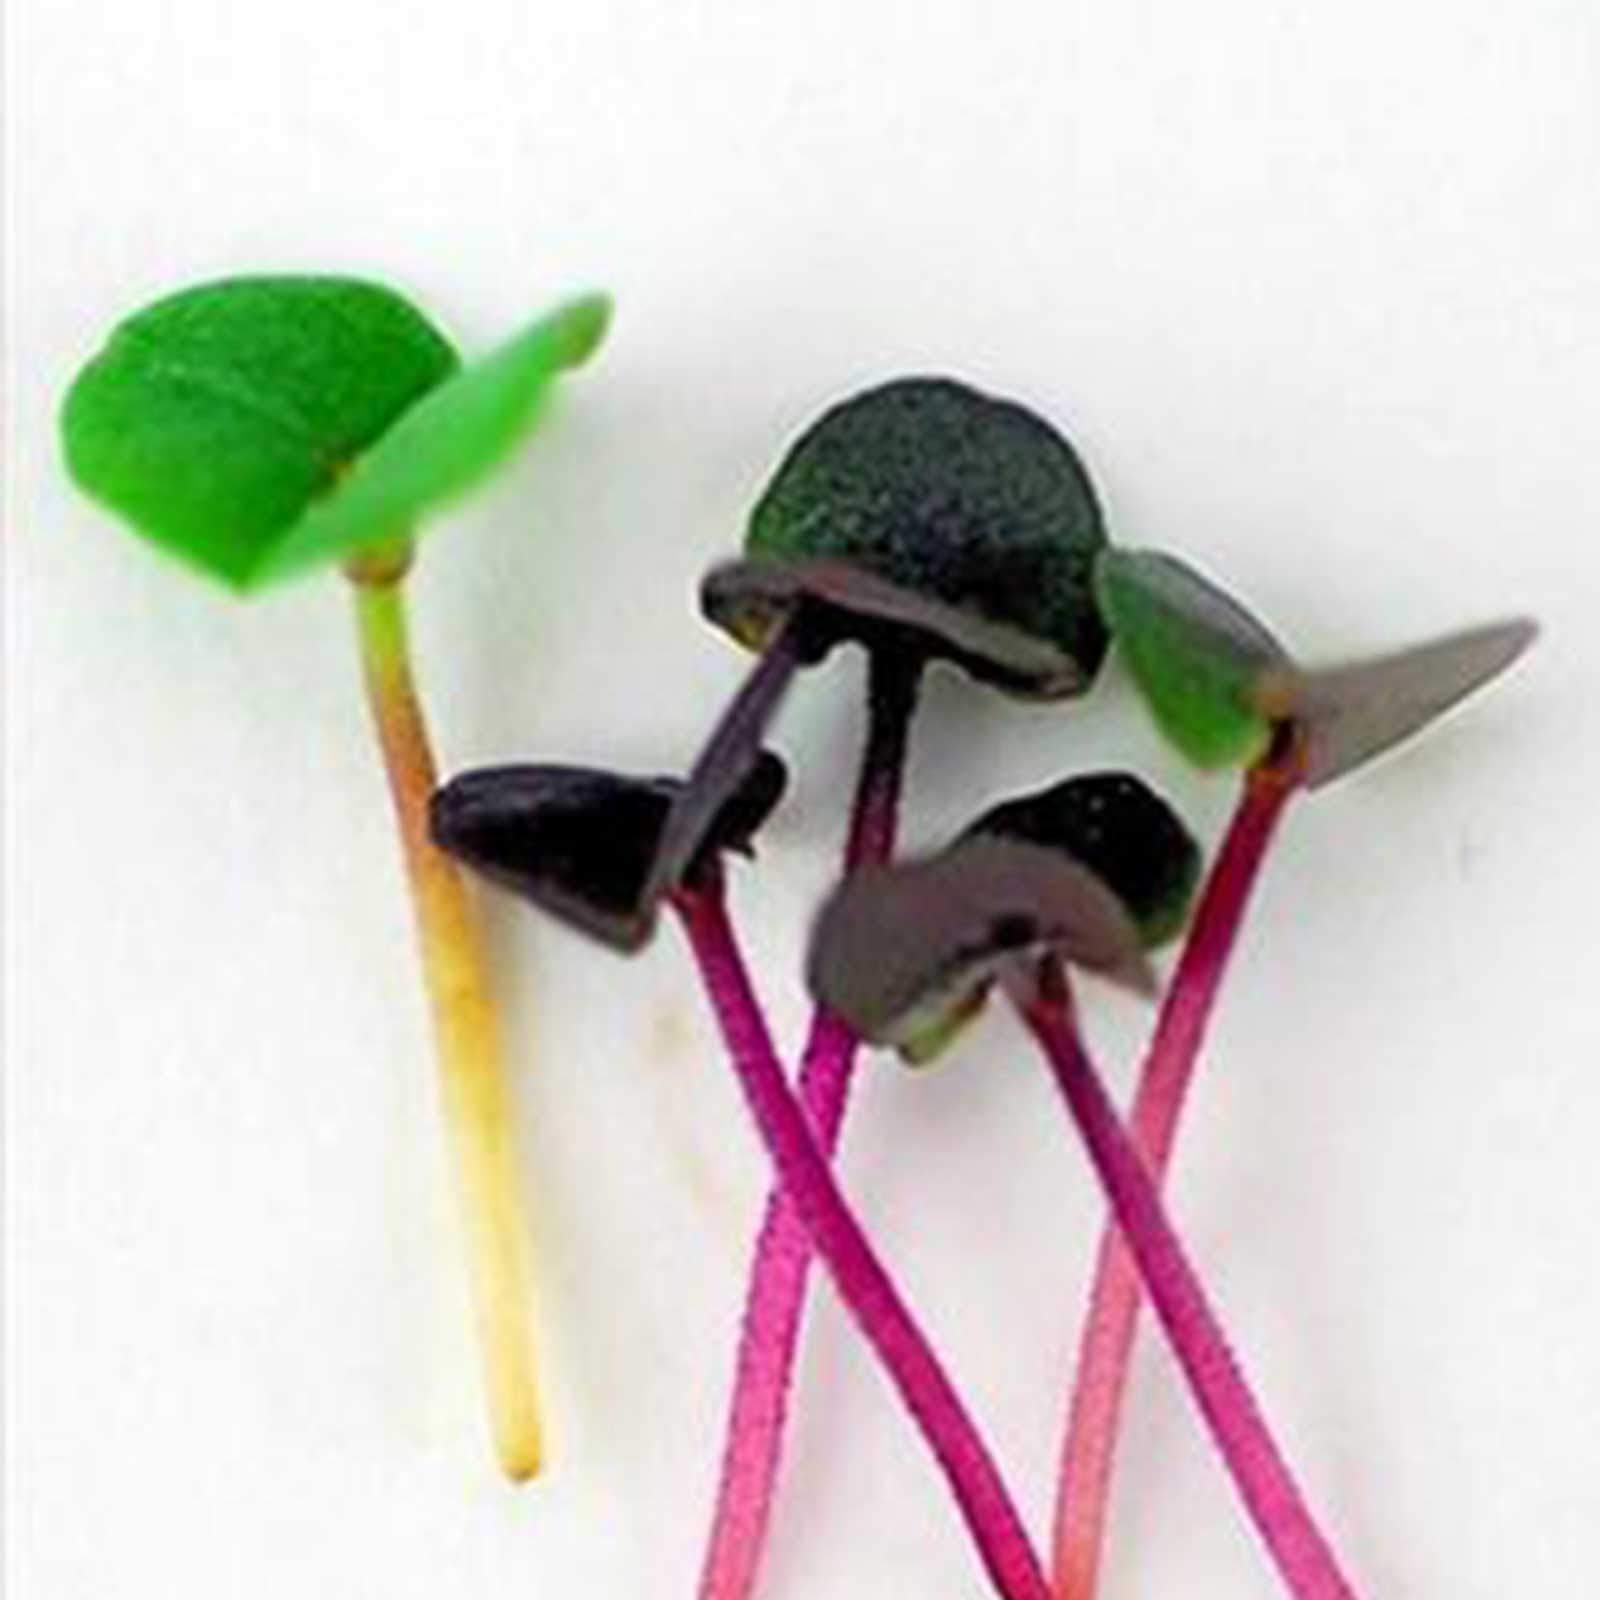 Deluxe Exotic Microgreens Seed Assortment | 12 Non GMO Varieties Including Chia Tatsoi, Pak Choi, Cress And More | Add Some Exotic Highlights To Your Cooking by Handy Pantry (Image #3)